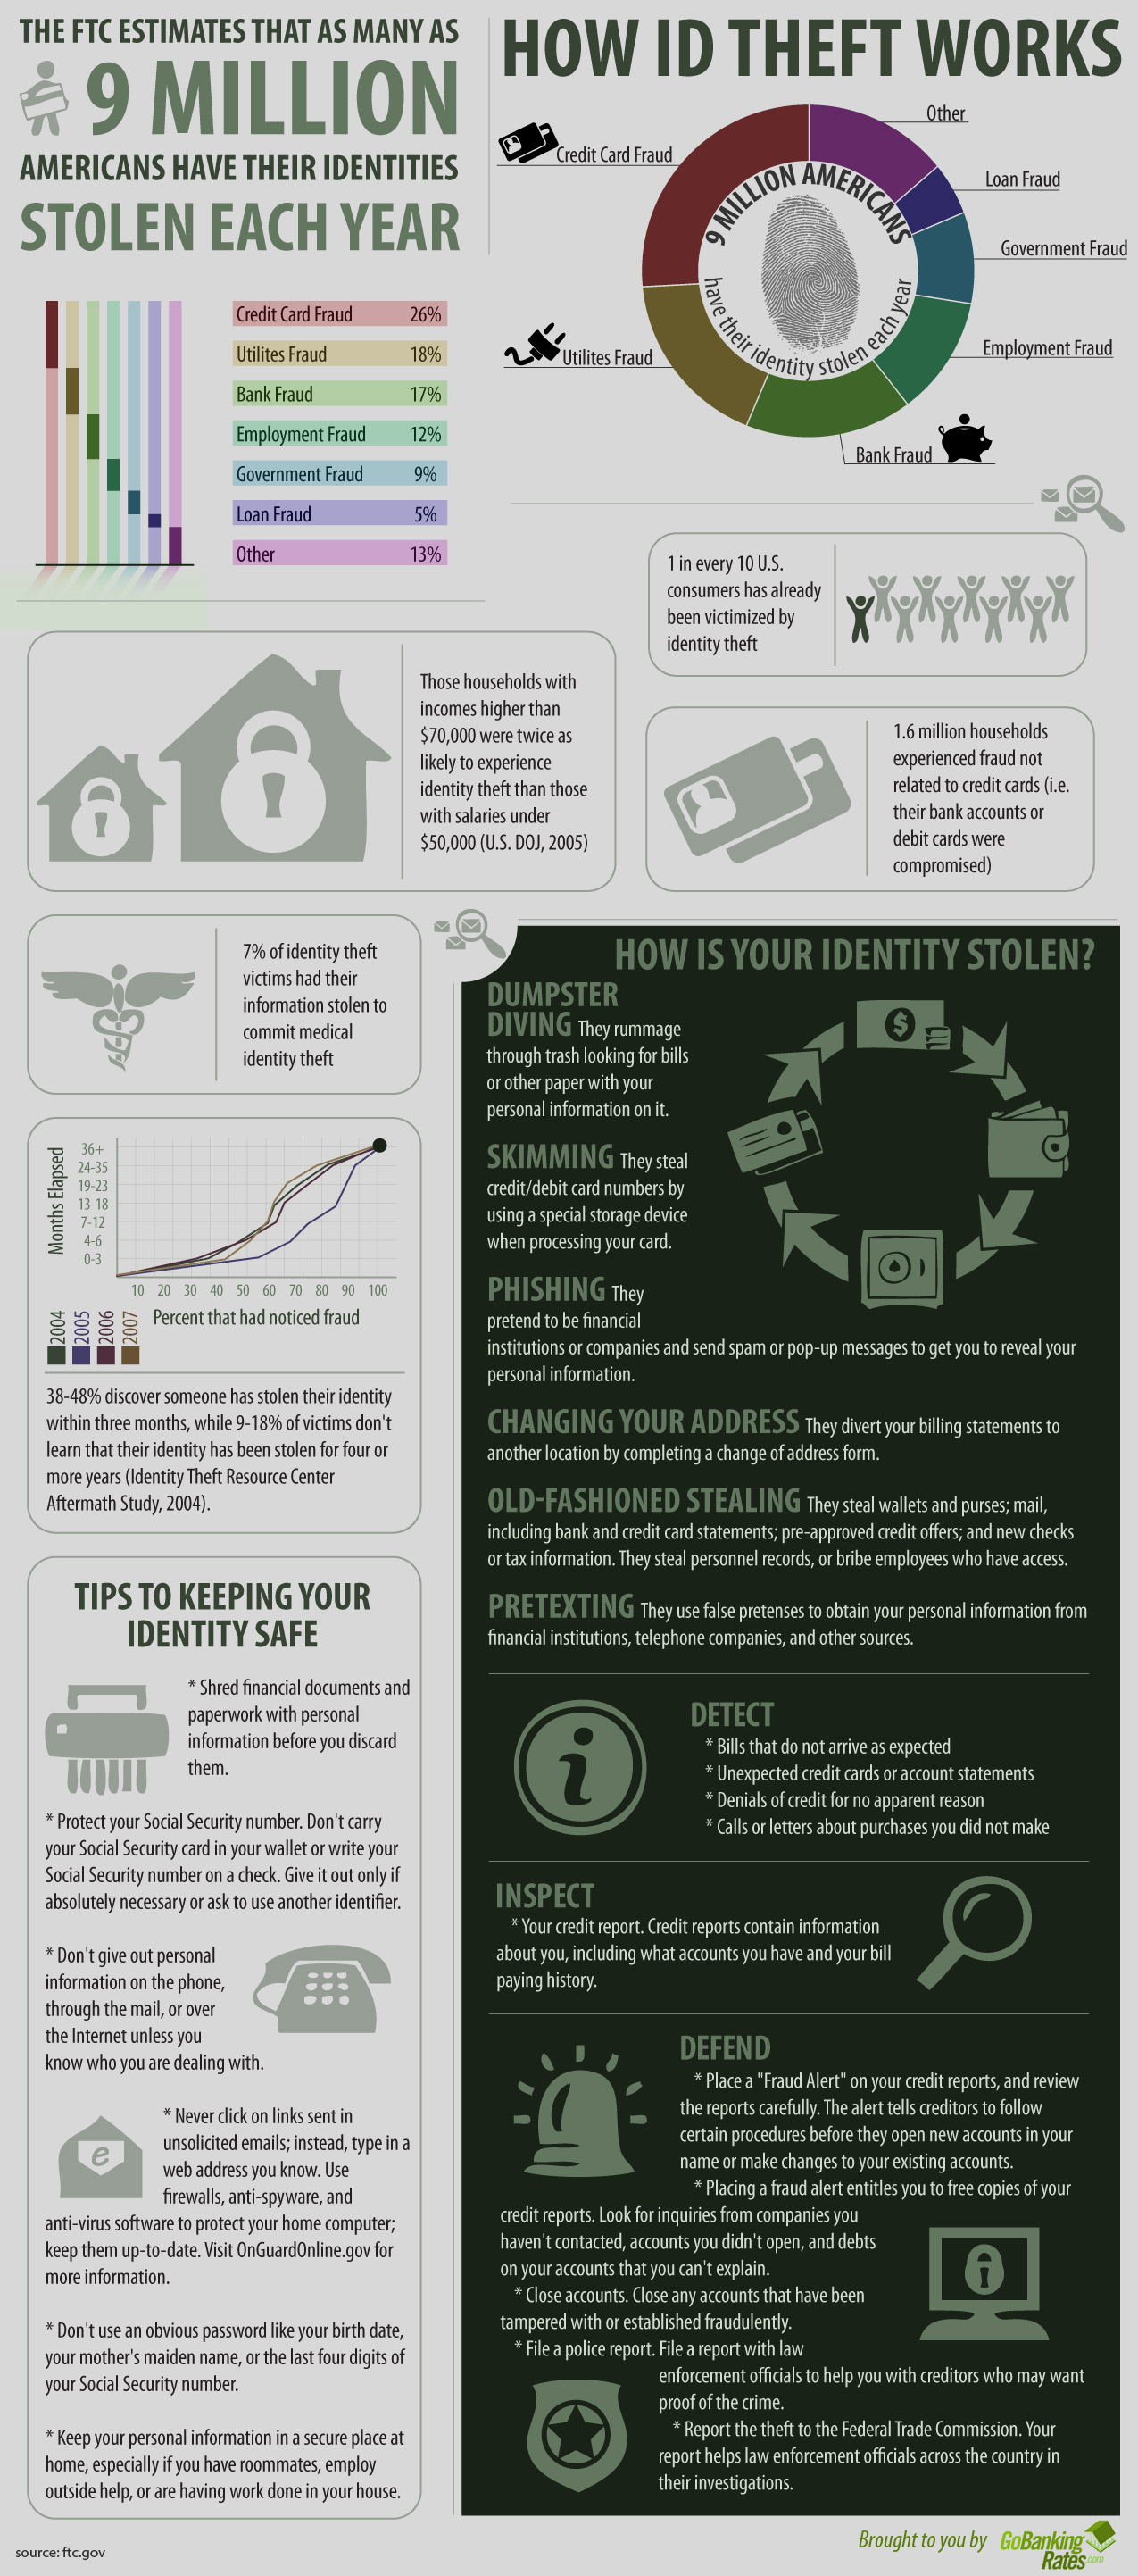 How Does Identity Fraud Work? - Money Watch